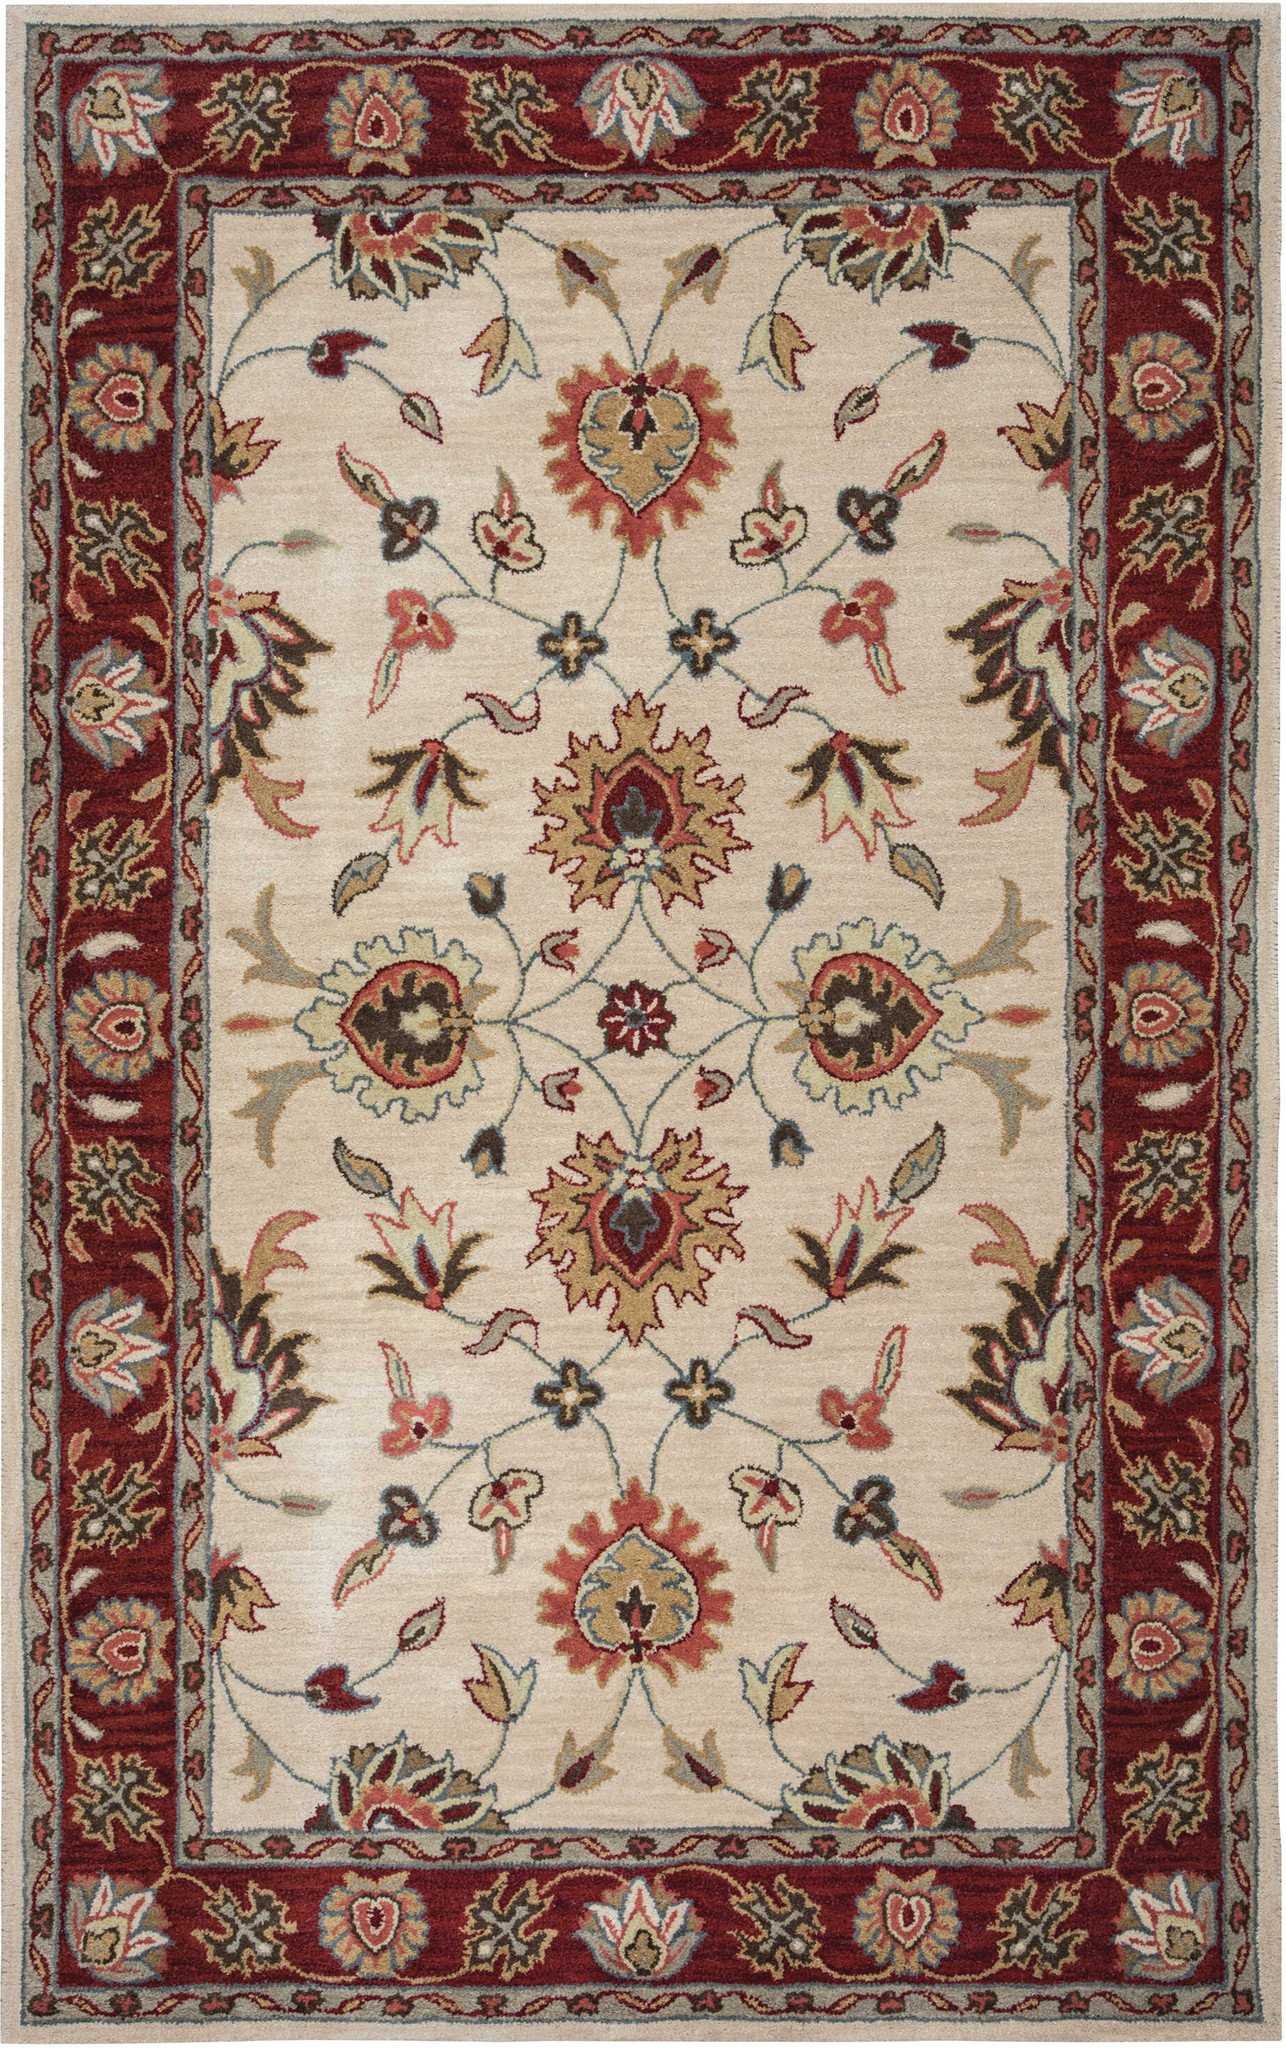 Rizzy Valintino Vn9666 Area Rug In 2020 Area Rugs Rugs Wool Area Rugs